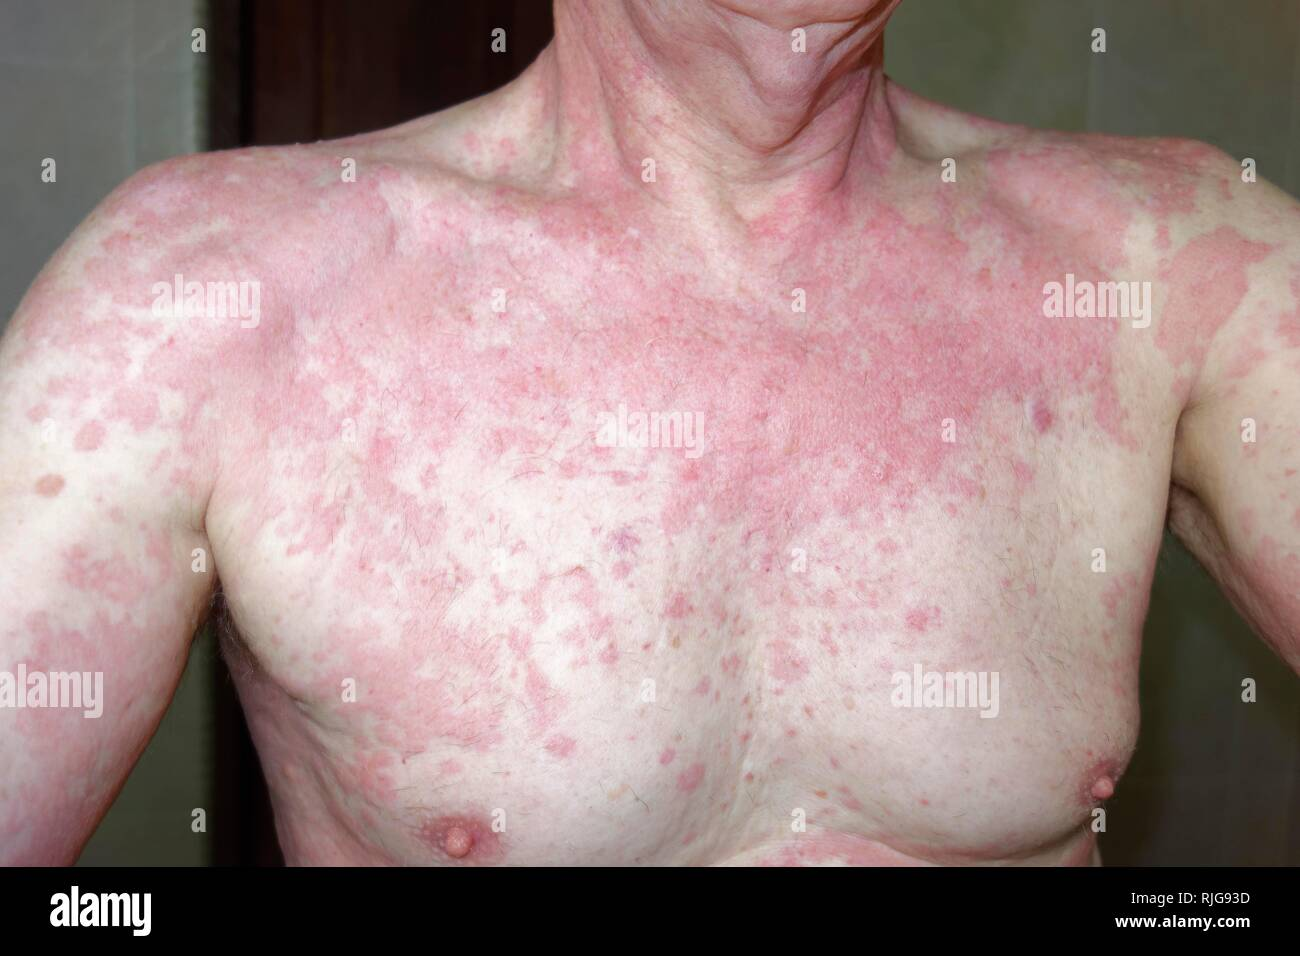 Man, 68 years old, with allergic reaction, skin rash, allergy, to insect repellent Baygon, Indonesia - Stock Image